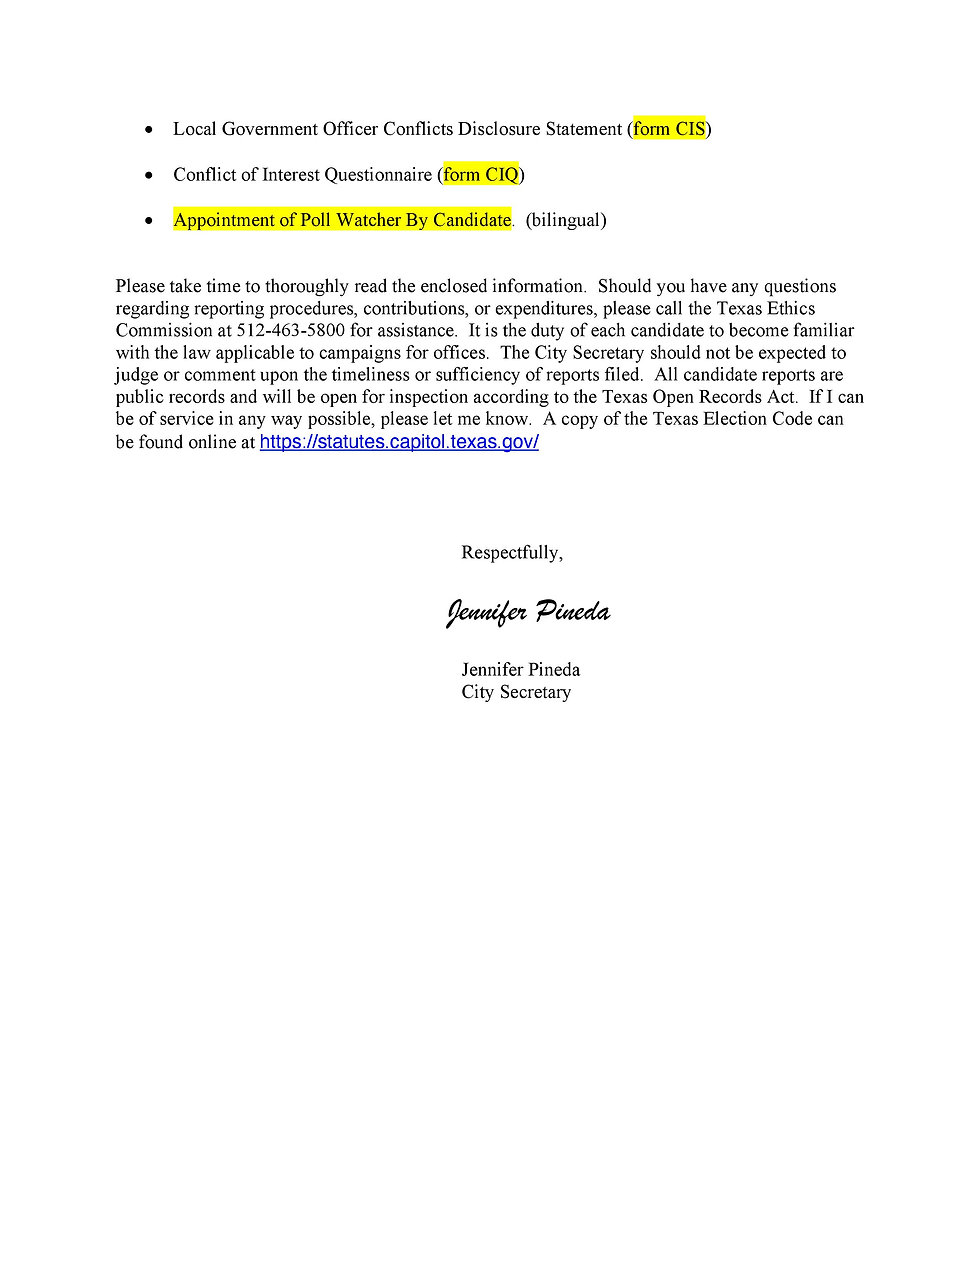 2020 Candidate letter-page-002.jpg